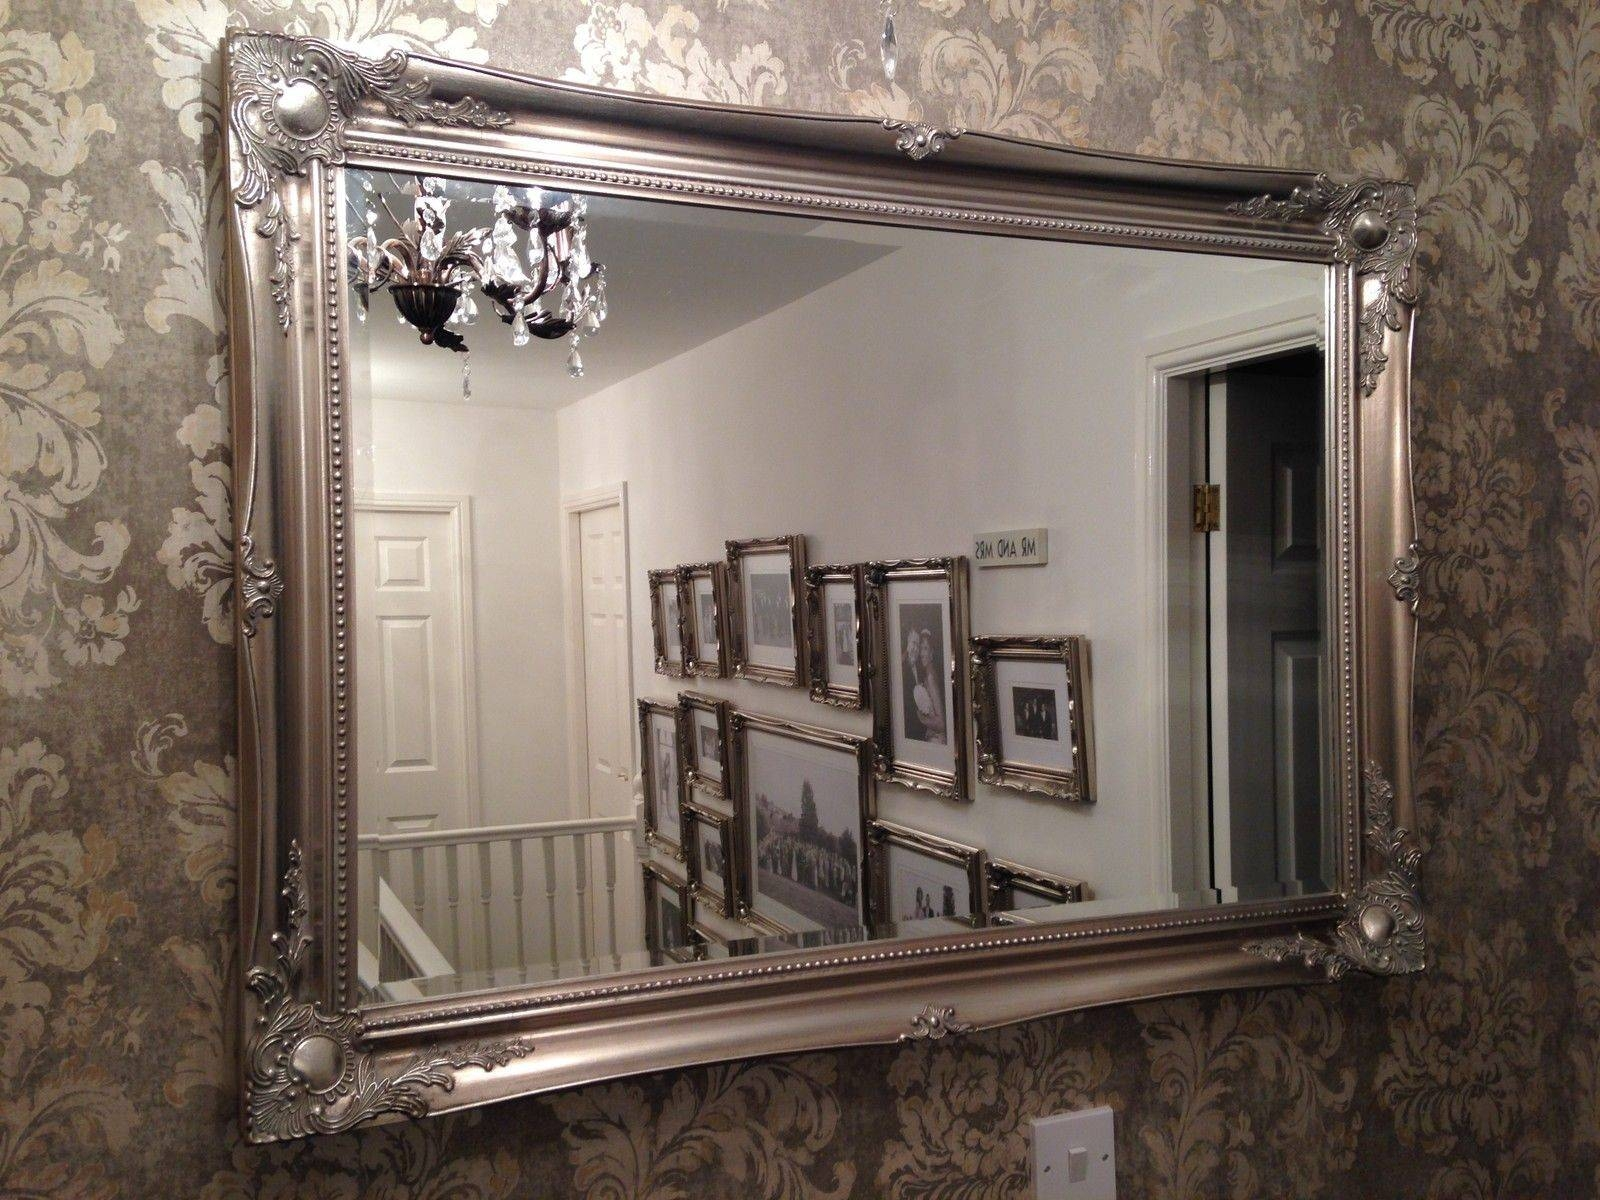 Large Antique Silver Elegant Wall Mirror - Free Uk Postage within Huge Ornate Mirrors (Image 7 of 15)